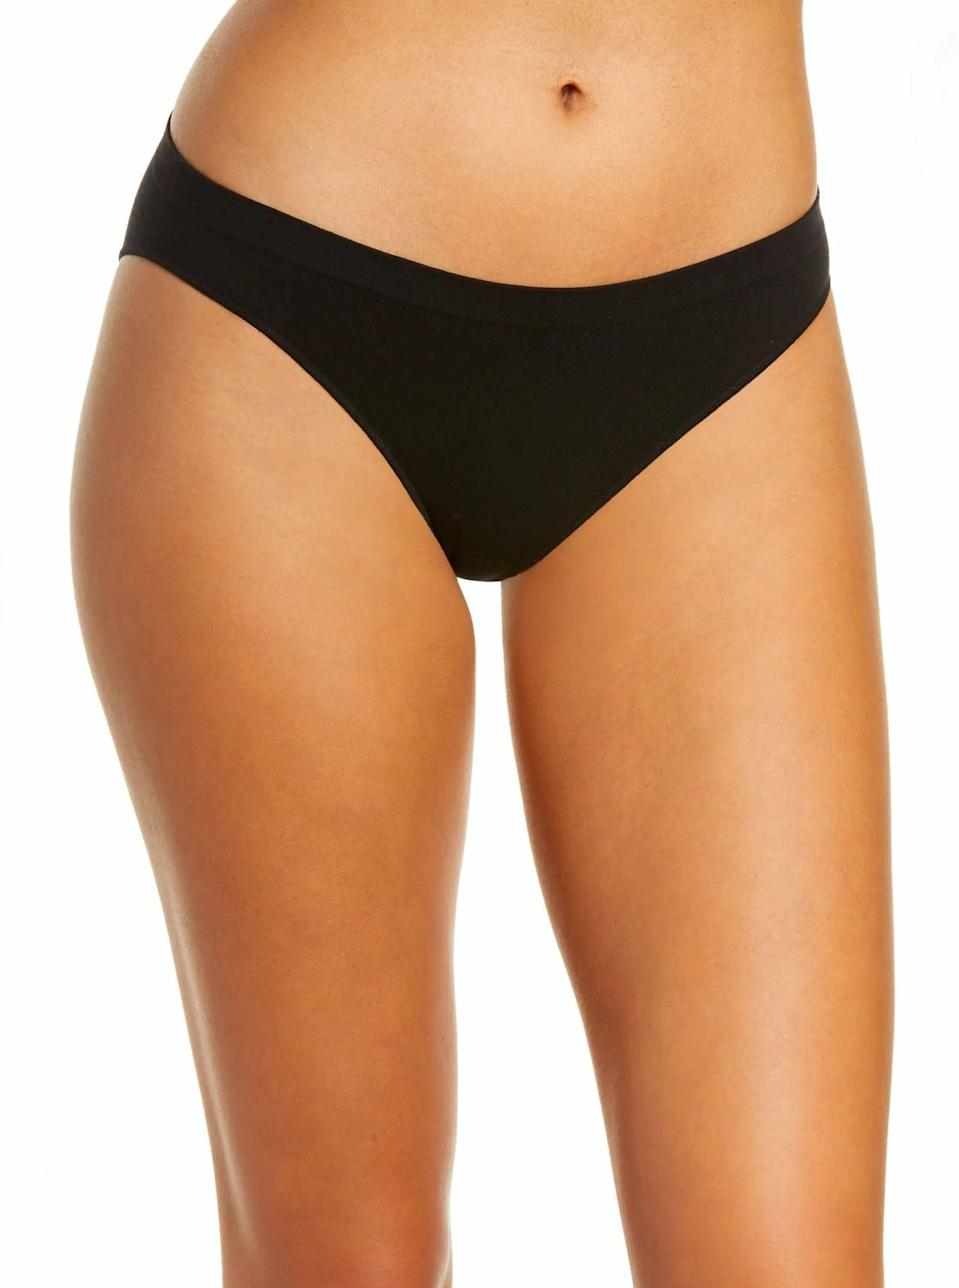 """Buttery soft, weightless, and a versatile fit—what's not to love about On Gossomer's cotton underwear? $20, Nordstrom. <a href=""""https://www.nordstrom.com/s/on-gossamer-cabana-cotton-seamless-bikini/5905796"""" rel=""""nofollow noopener"""" target=""""_blank"""" data-ylk=""""slk:Get it now!"""" class=""""link rapid-noclick-resp"""">Get it now!</a>"""